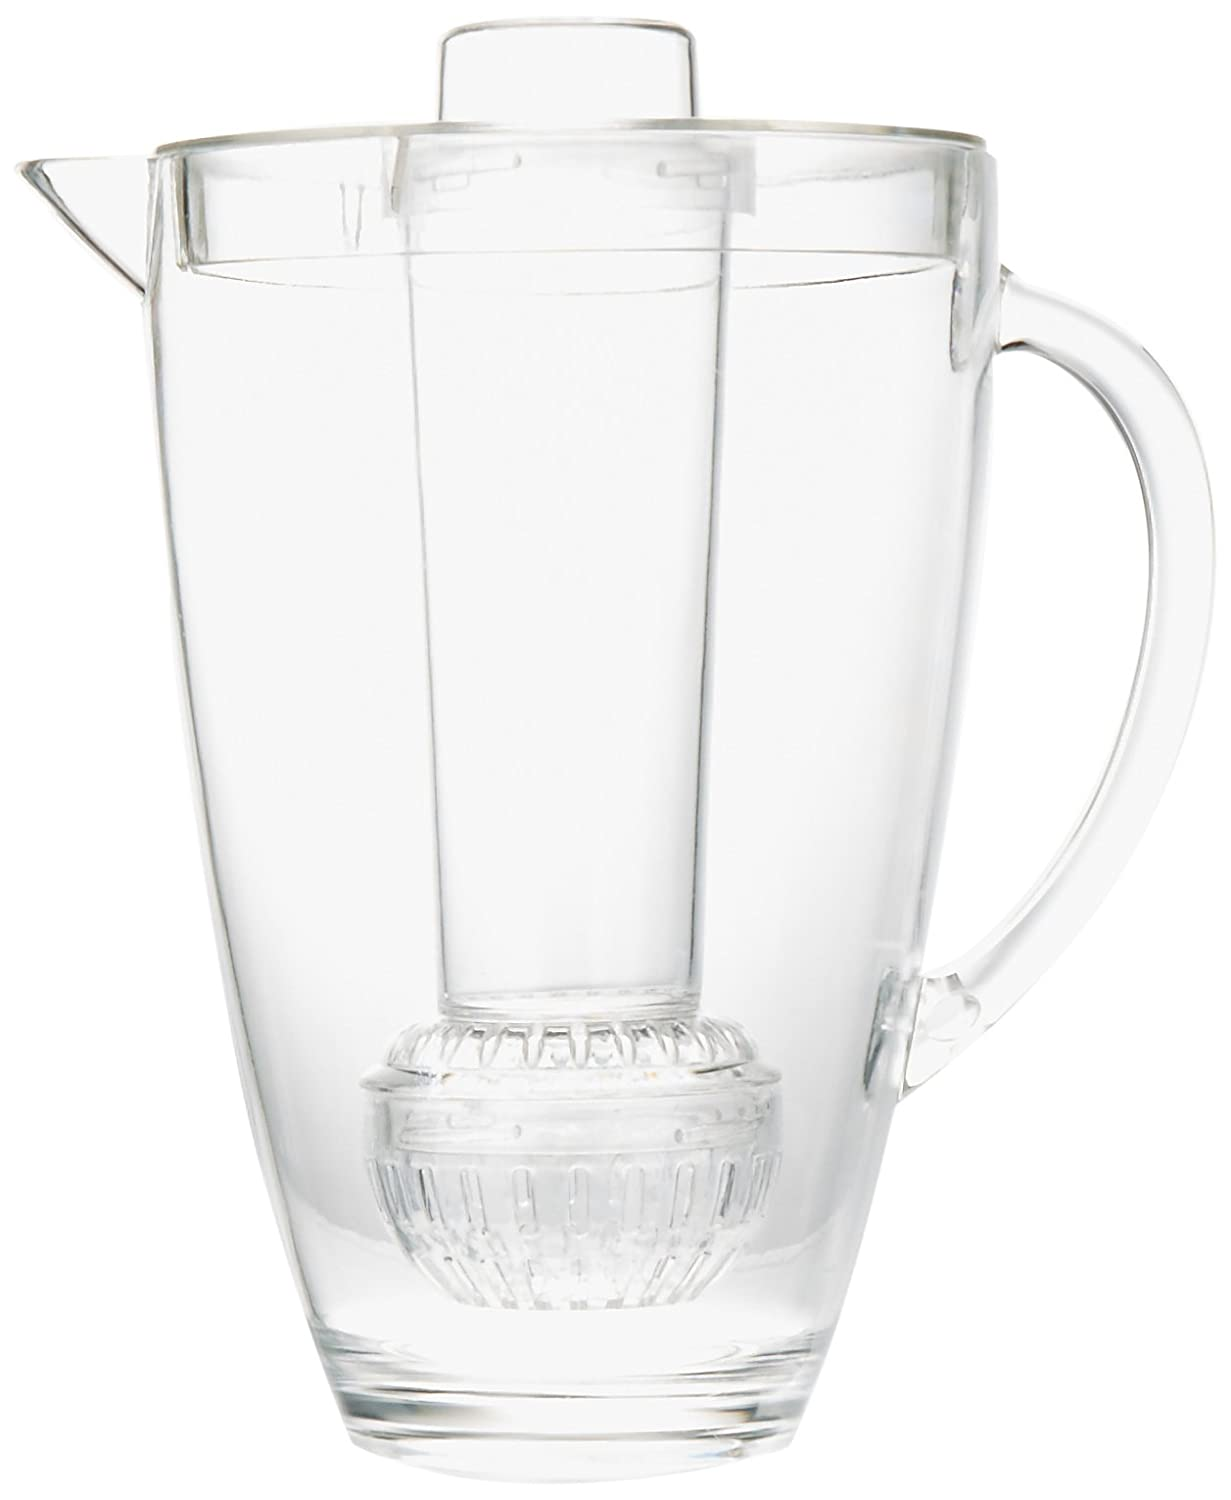 Amazon.com | Frigidaire 3 Quart Chill and Infusion Pitcher with Lid: Carafes & Pitchers